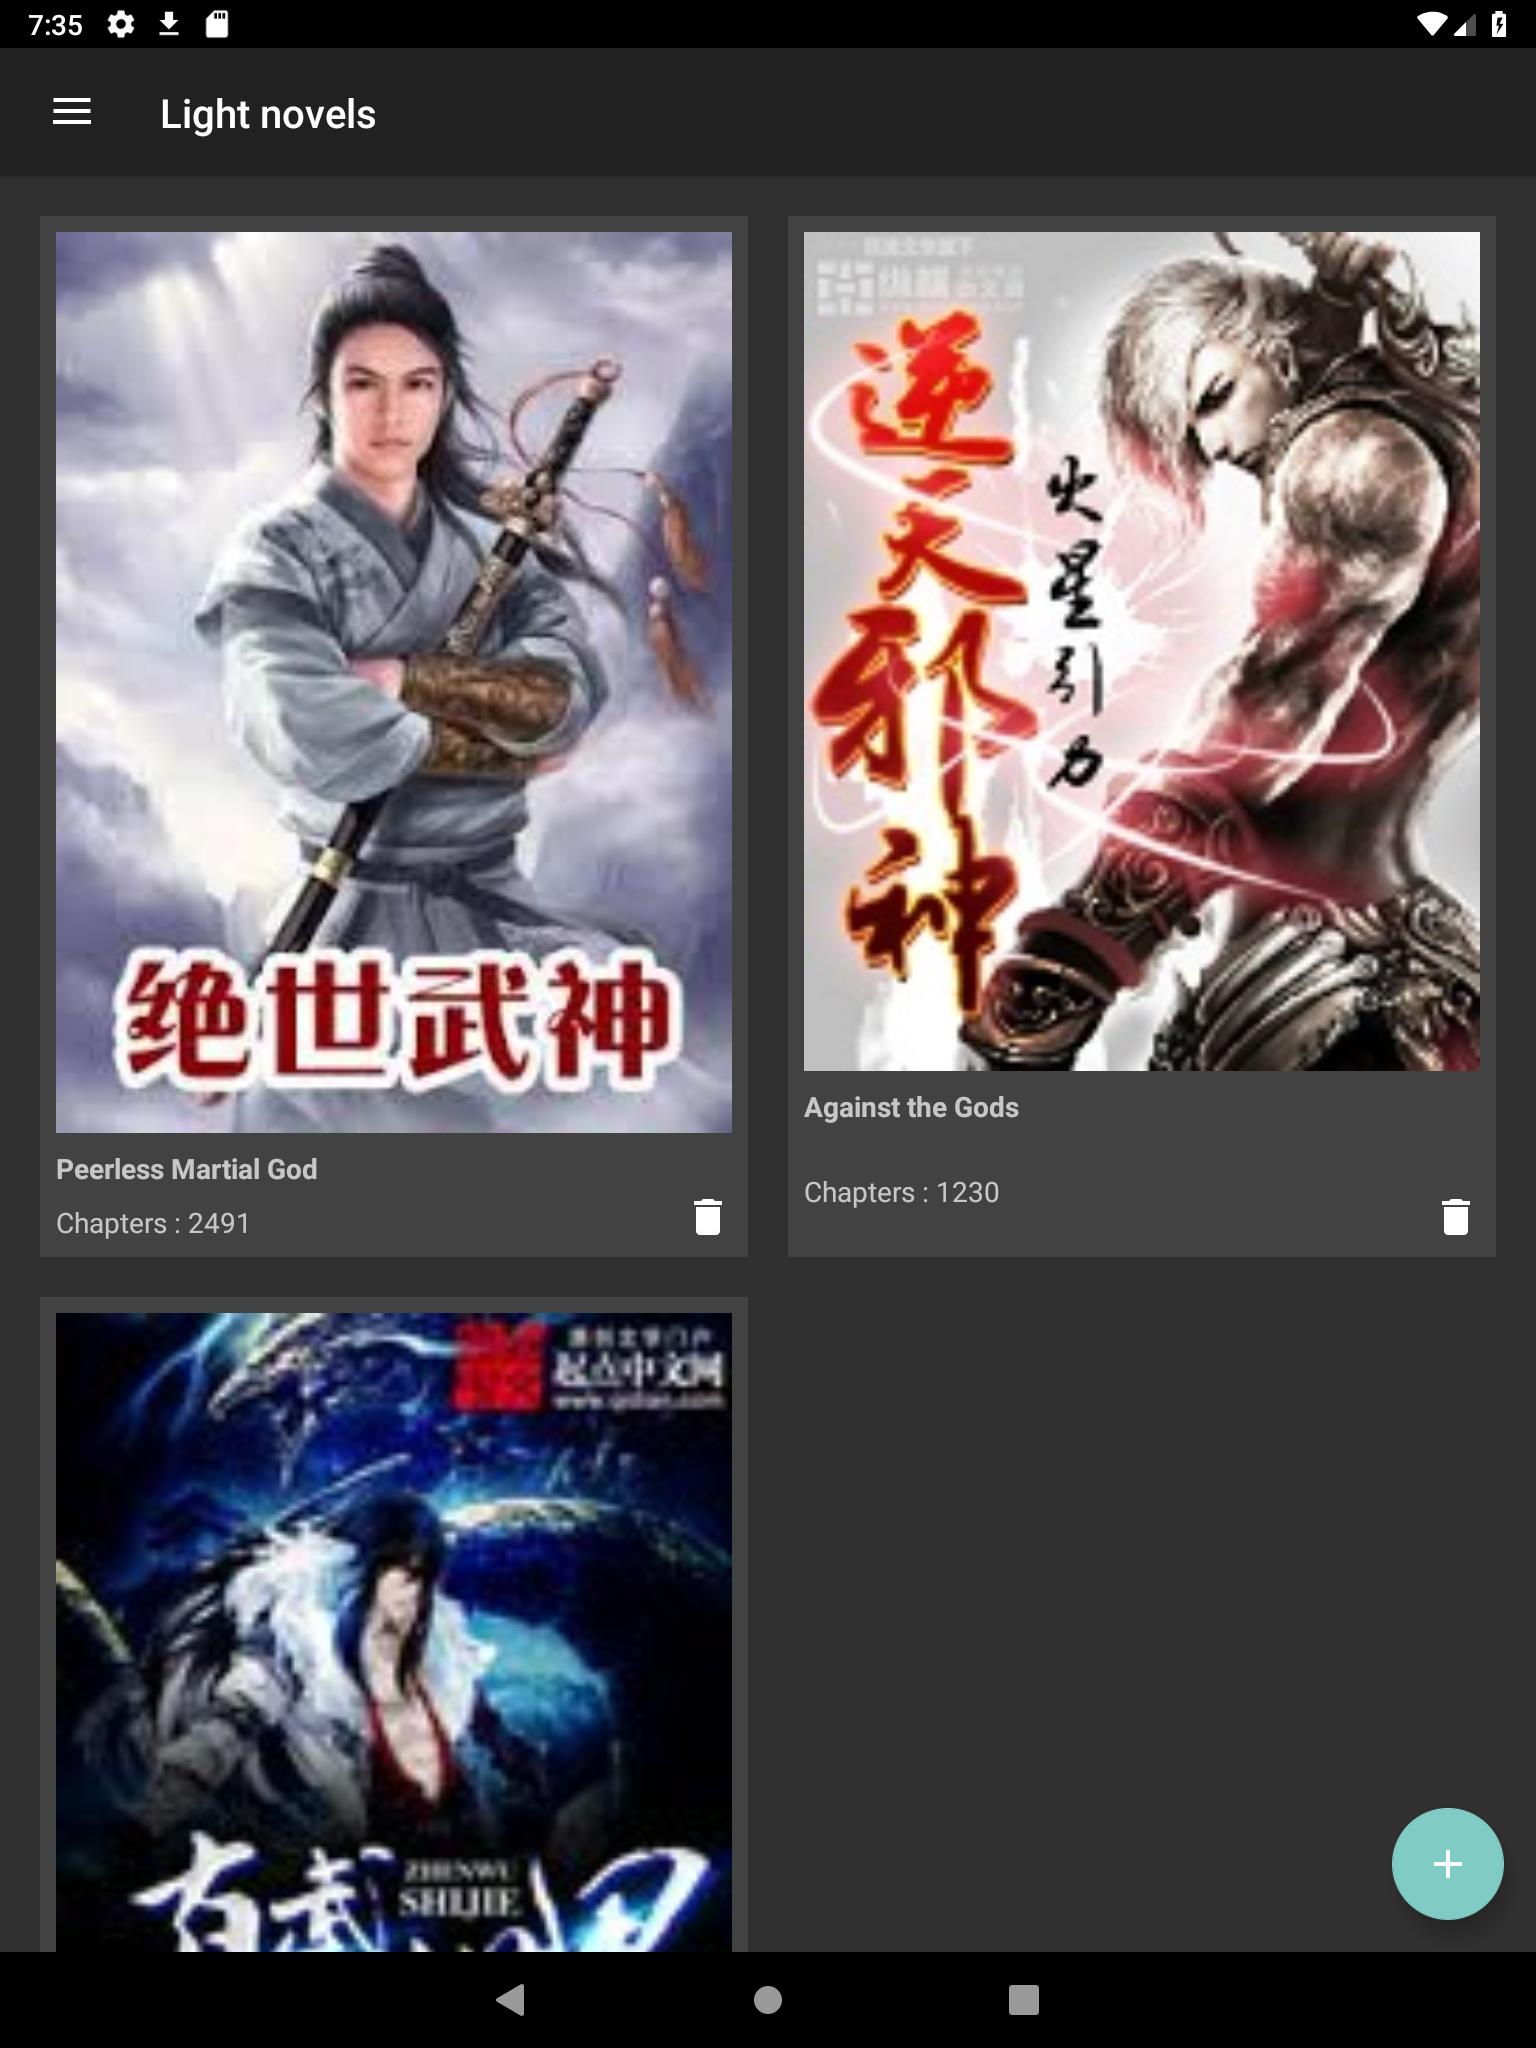 Mandrasoft Manga//Light-novel Reader for Android - APK Download